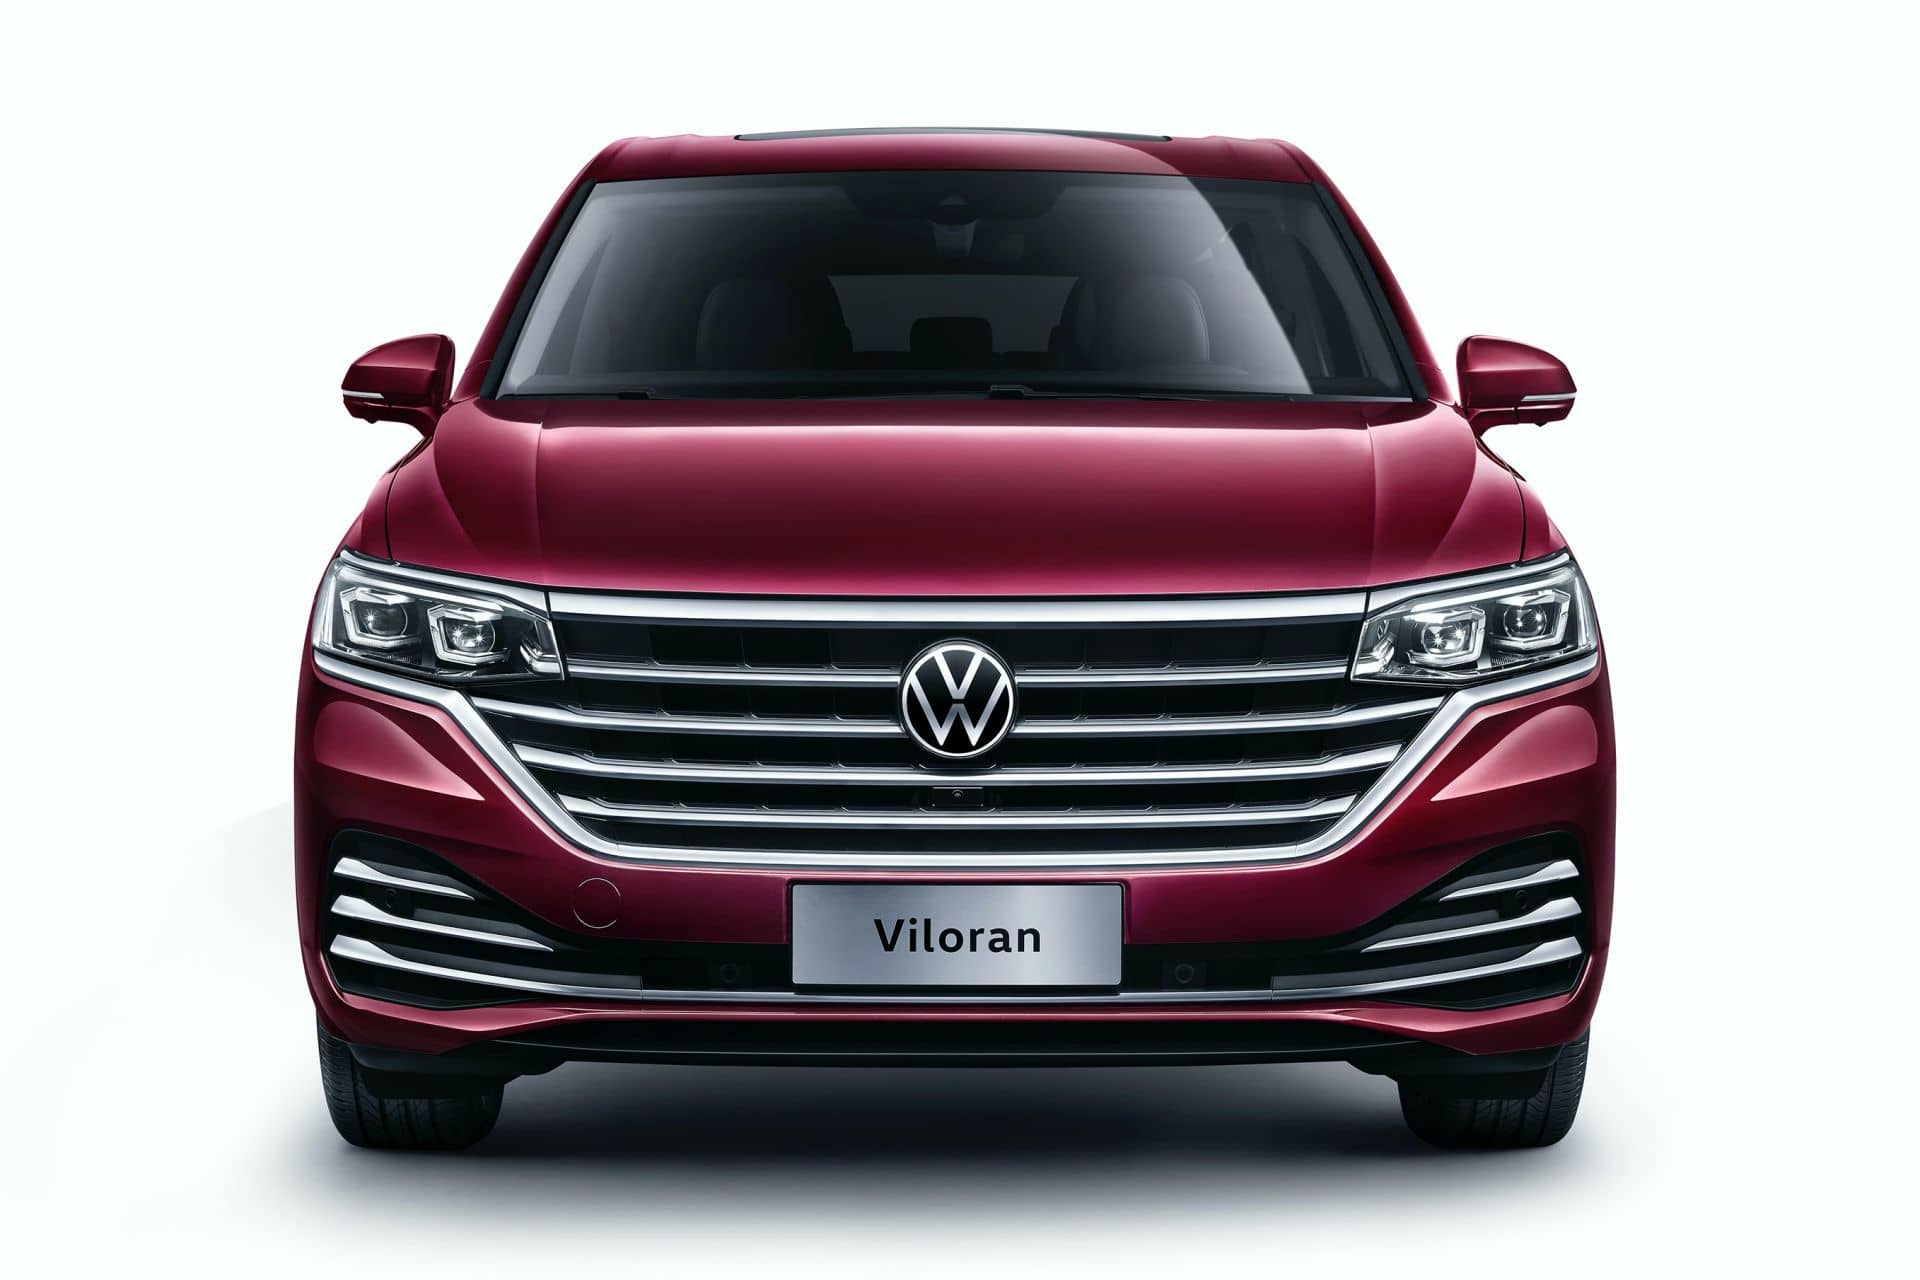 VW-Viloran-China-spec-2